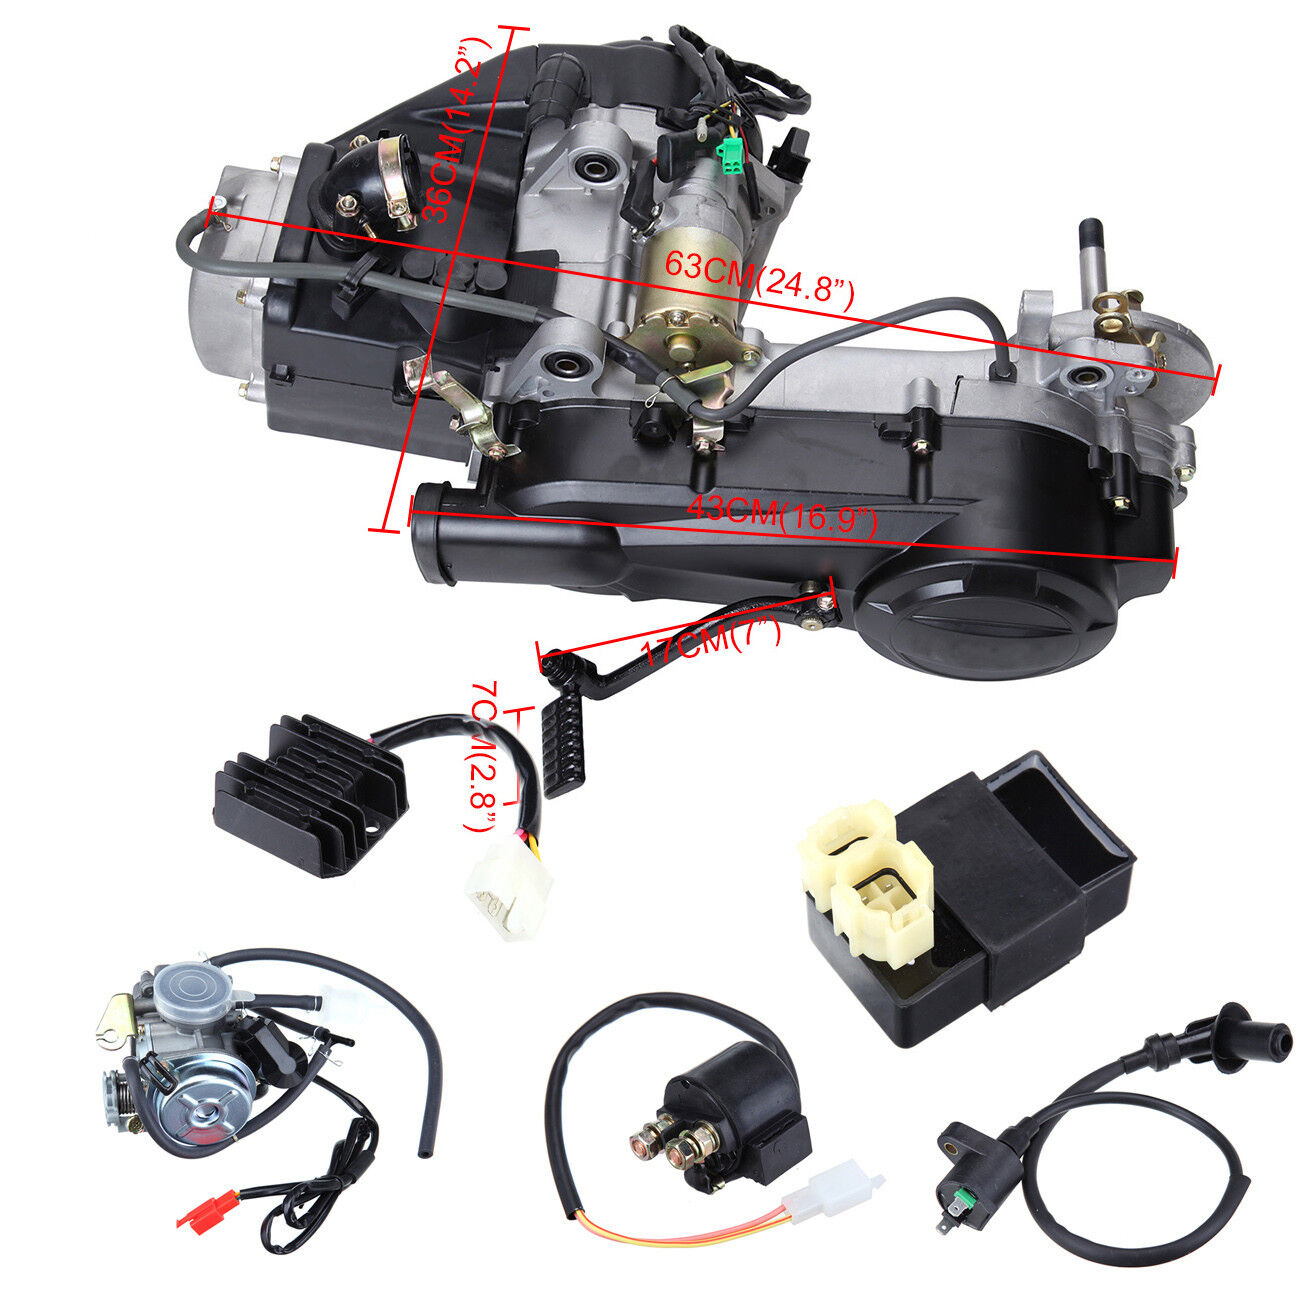 150CC GY6 Single Cylinder 4-Stroke Engine Motor Carburettor For Vehicles